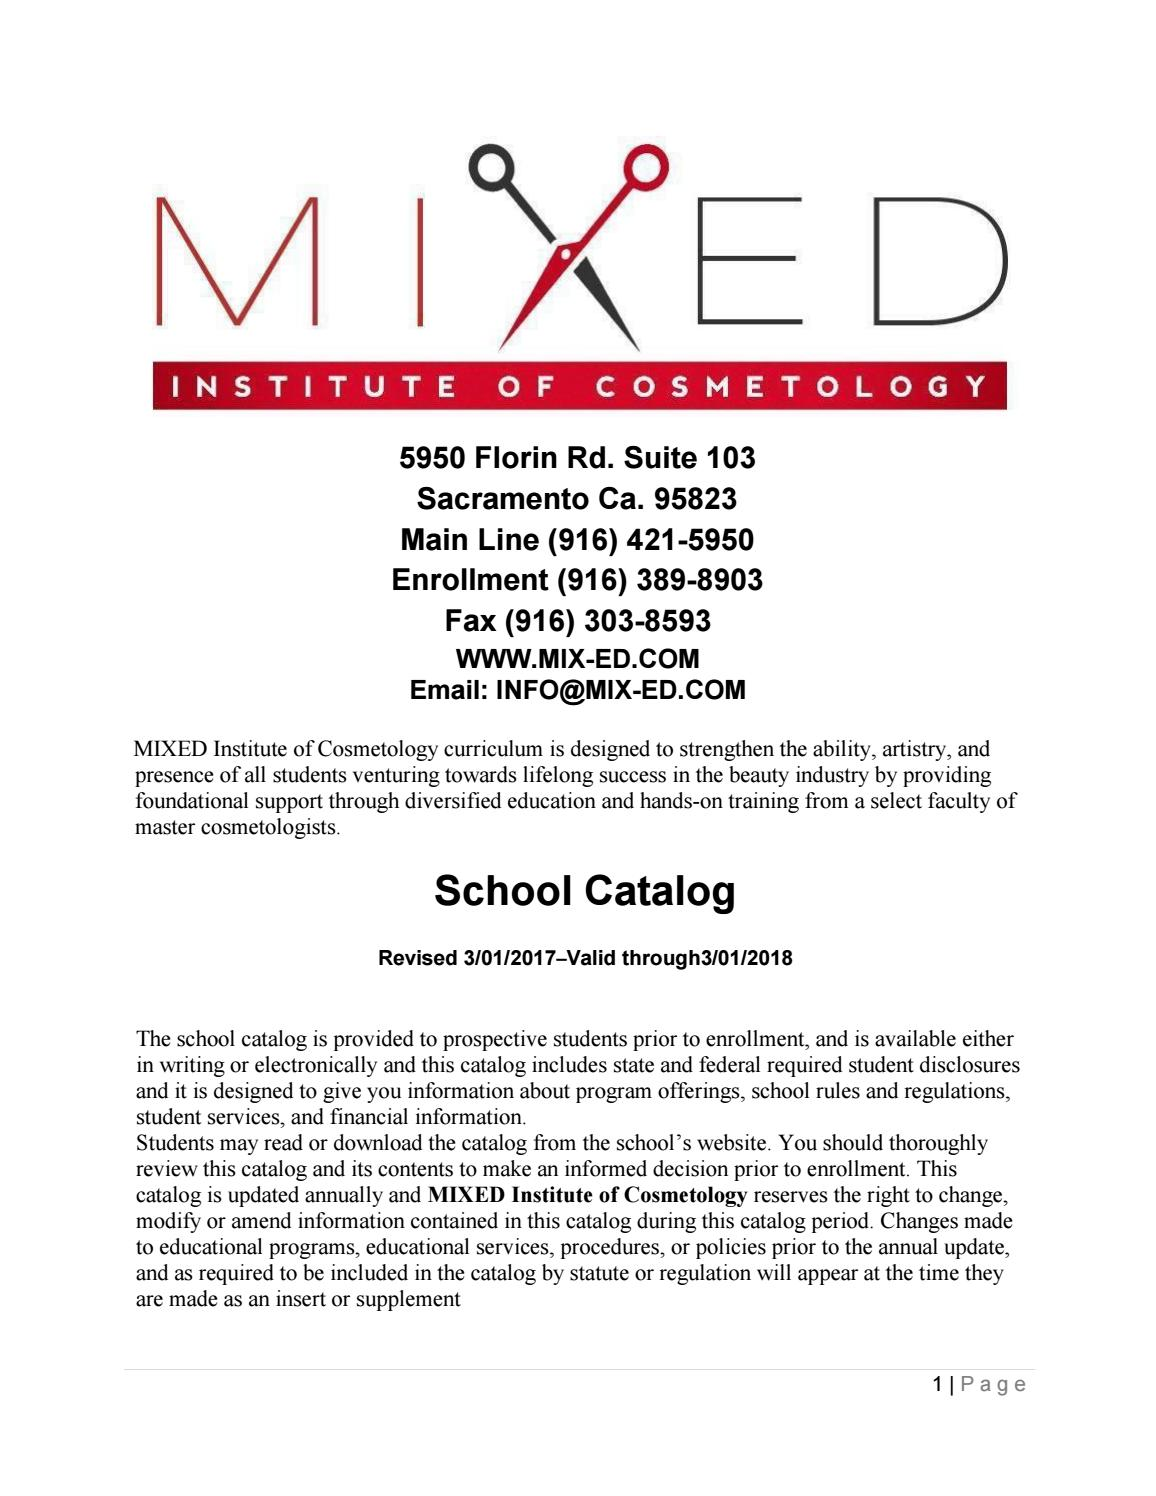 2017 mixed school catalog by mixed institute of cosmetology issuu aiddatafo Image collections